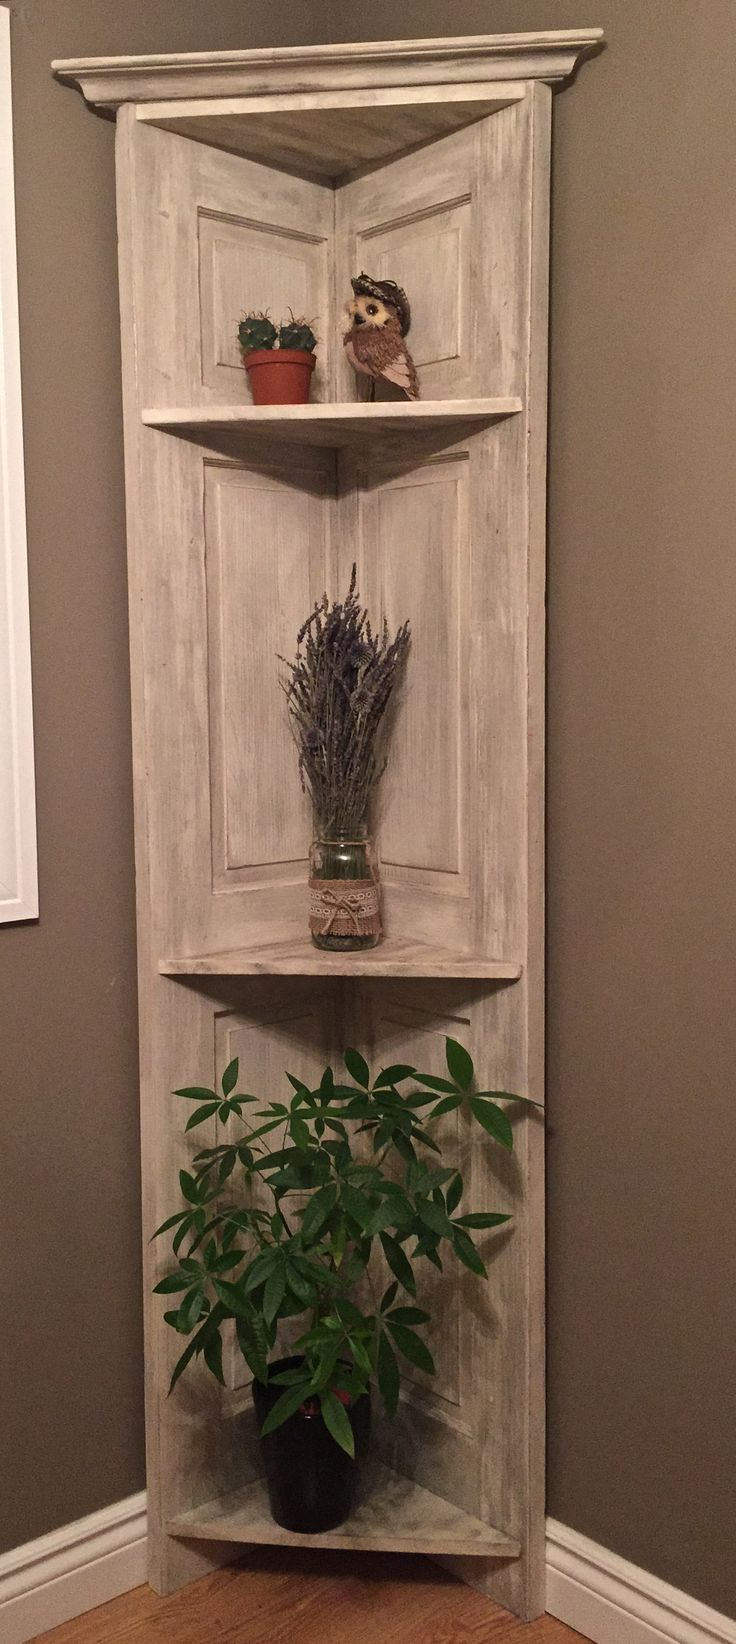 Save a door from going to the landfill and making it into a corner shelf using scraps of wood and a chalk paint recipe found on Pinterest